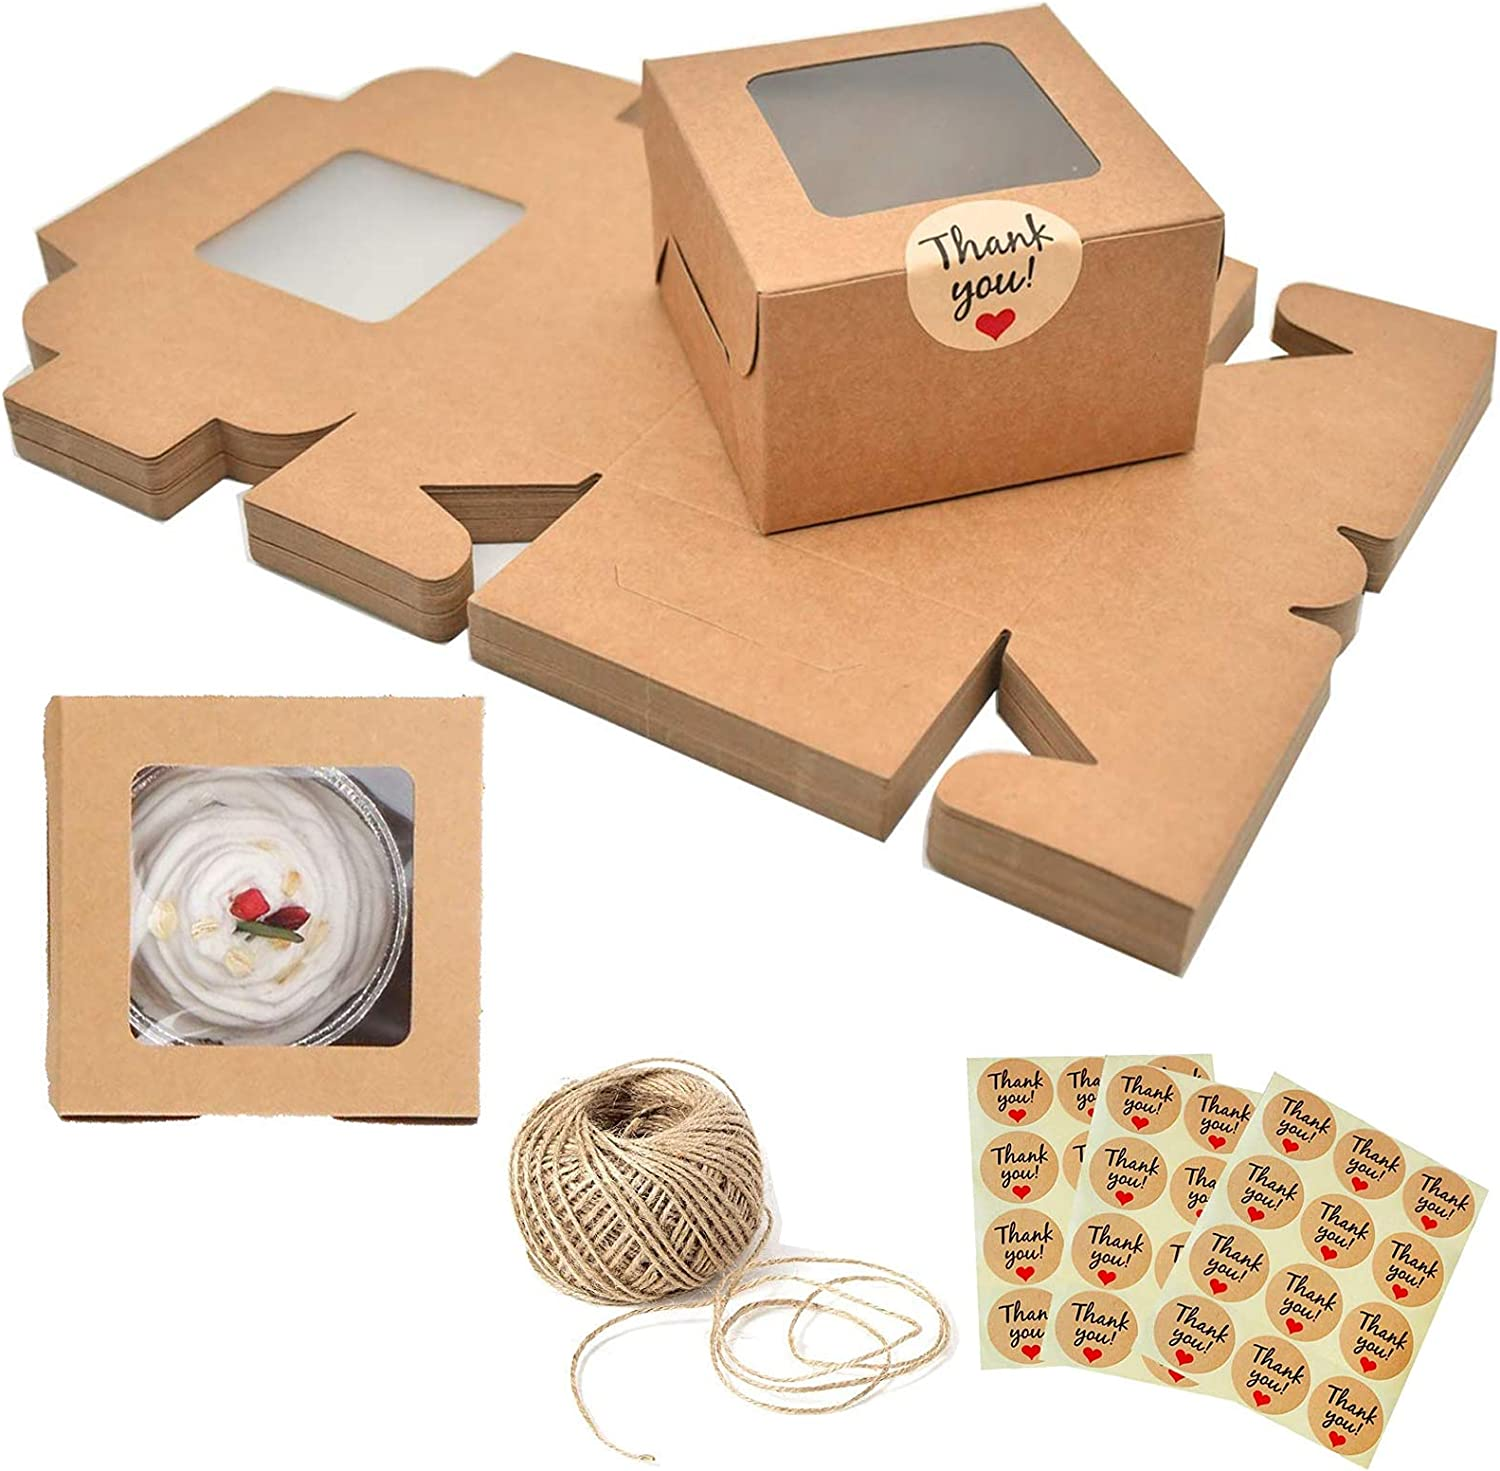 25 Pack Cookies Boxes With Window - 4x4x2.5 Inch Brown Kraft Cardboard Cake Boxes With Clear Lid - Small Bakery Packaging for Pastries, Donuts, Sugar - Gift Boxes With Stickers and Jute Twine